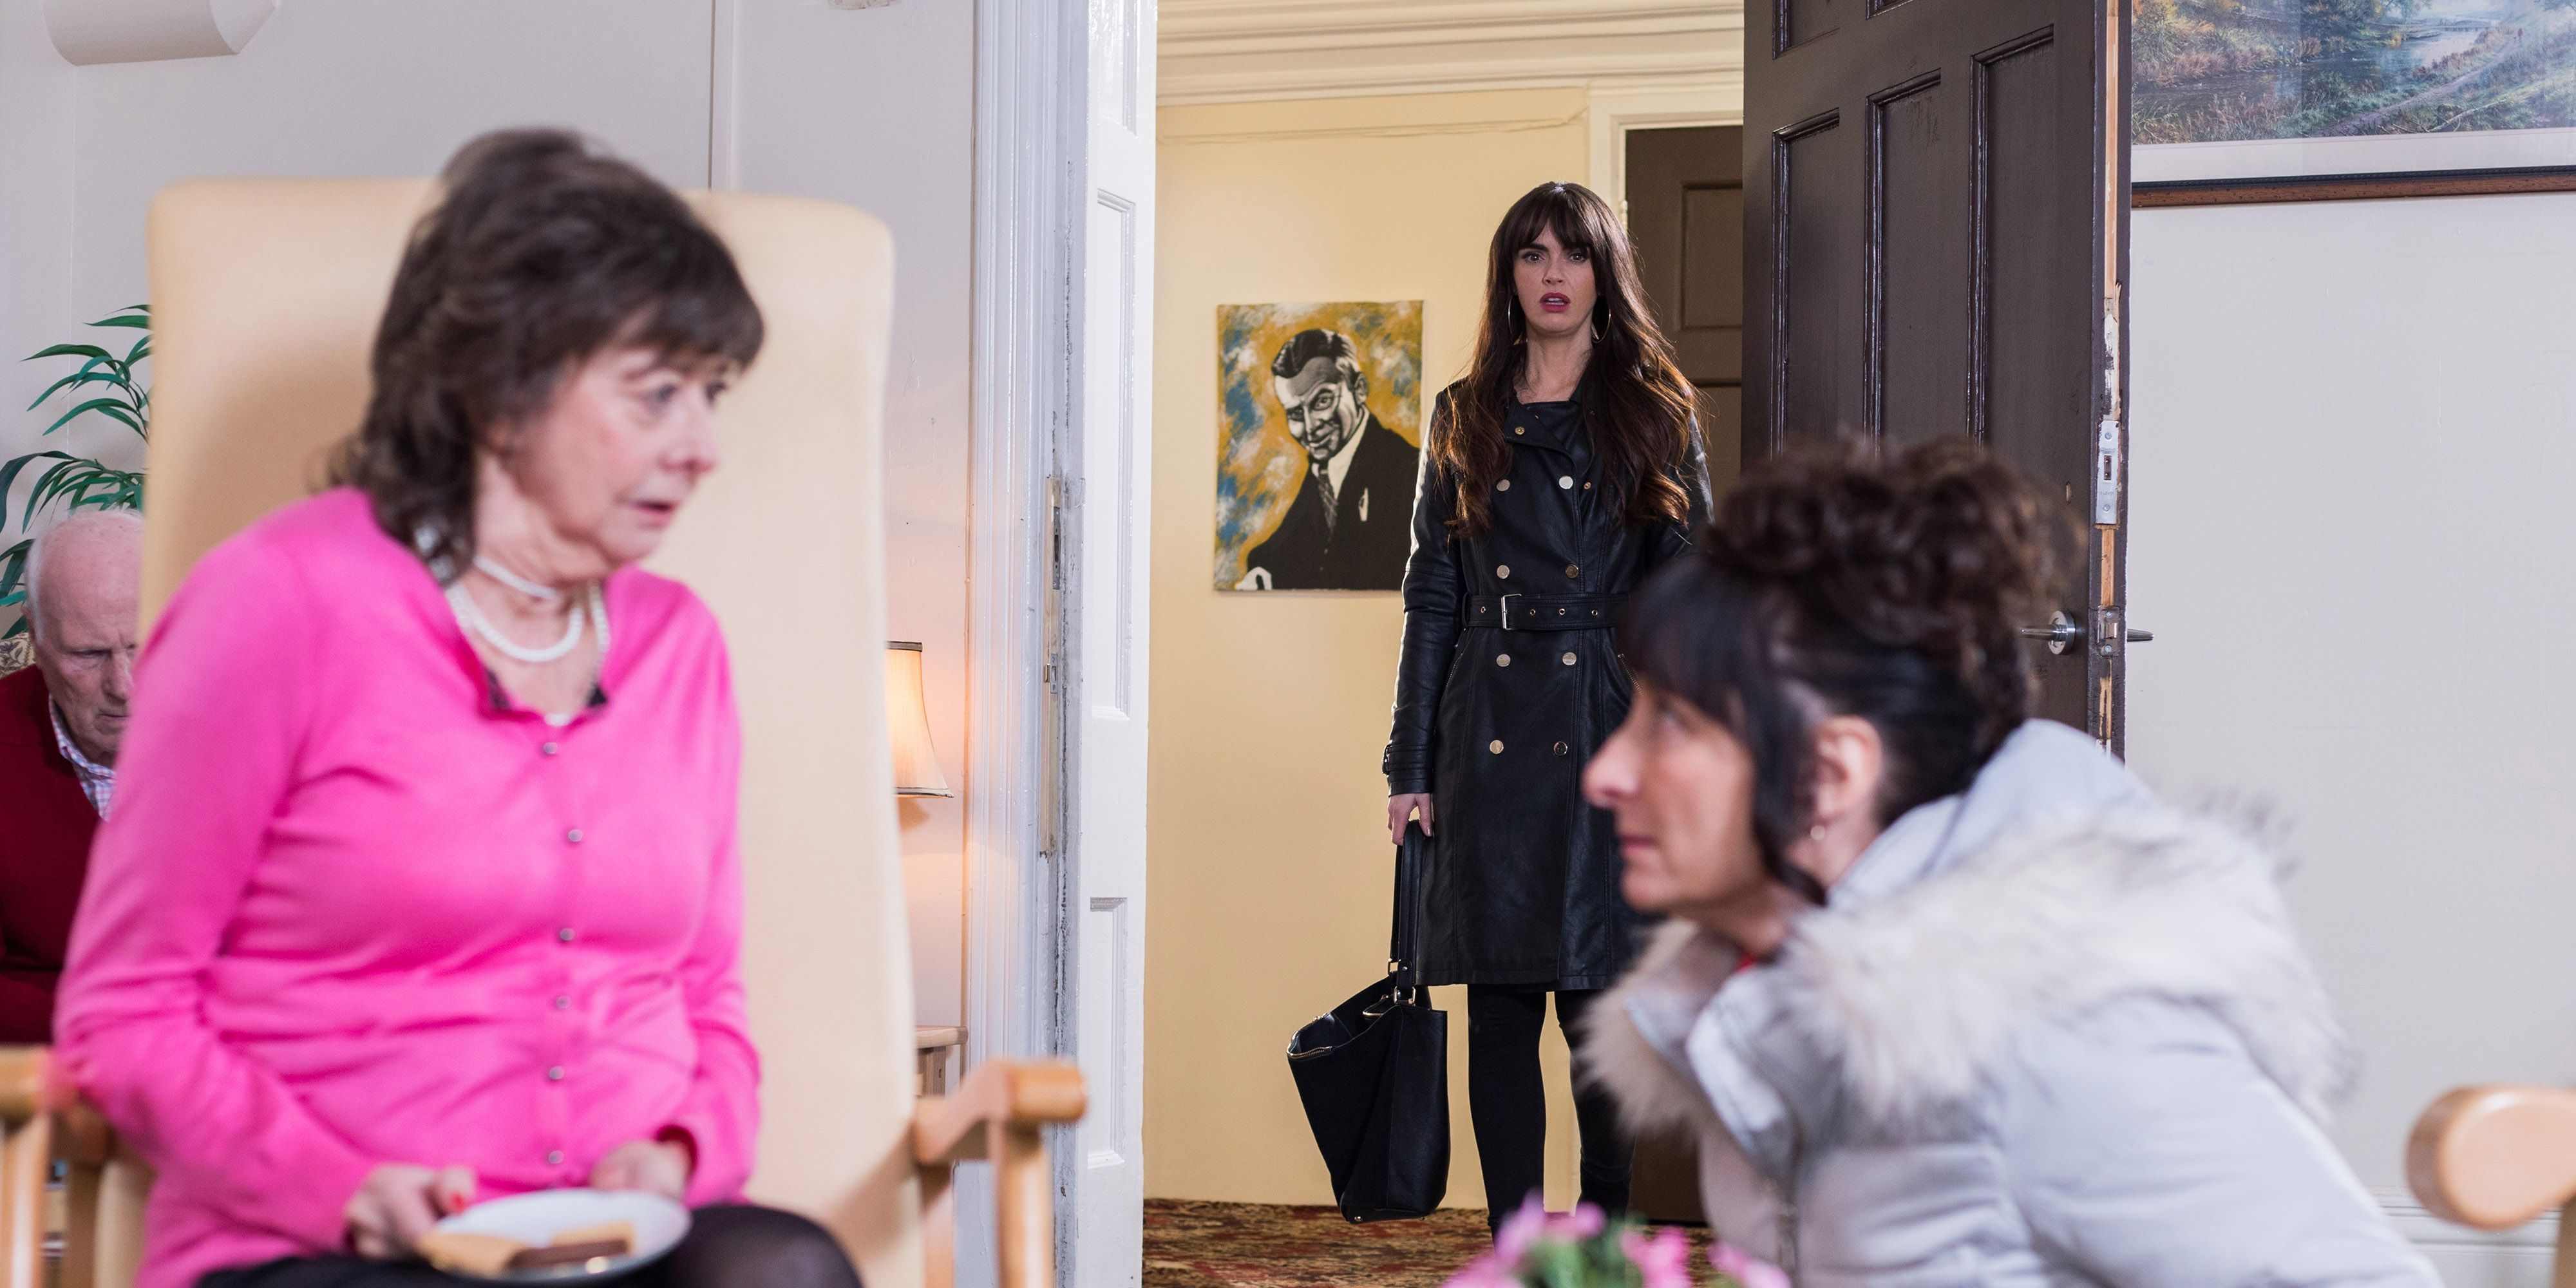 Hollyoaks: Breda McQueen meets Harriet (embargoed 2/22/19)